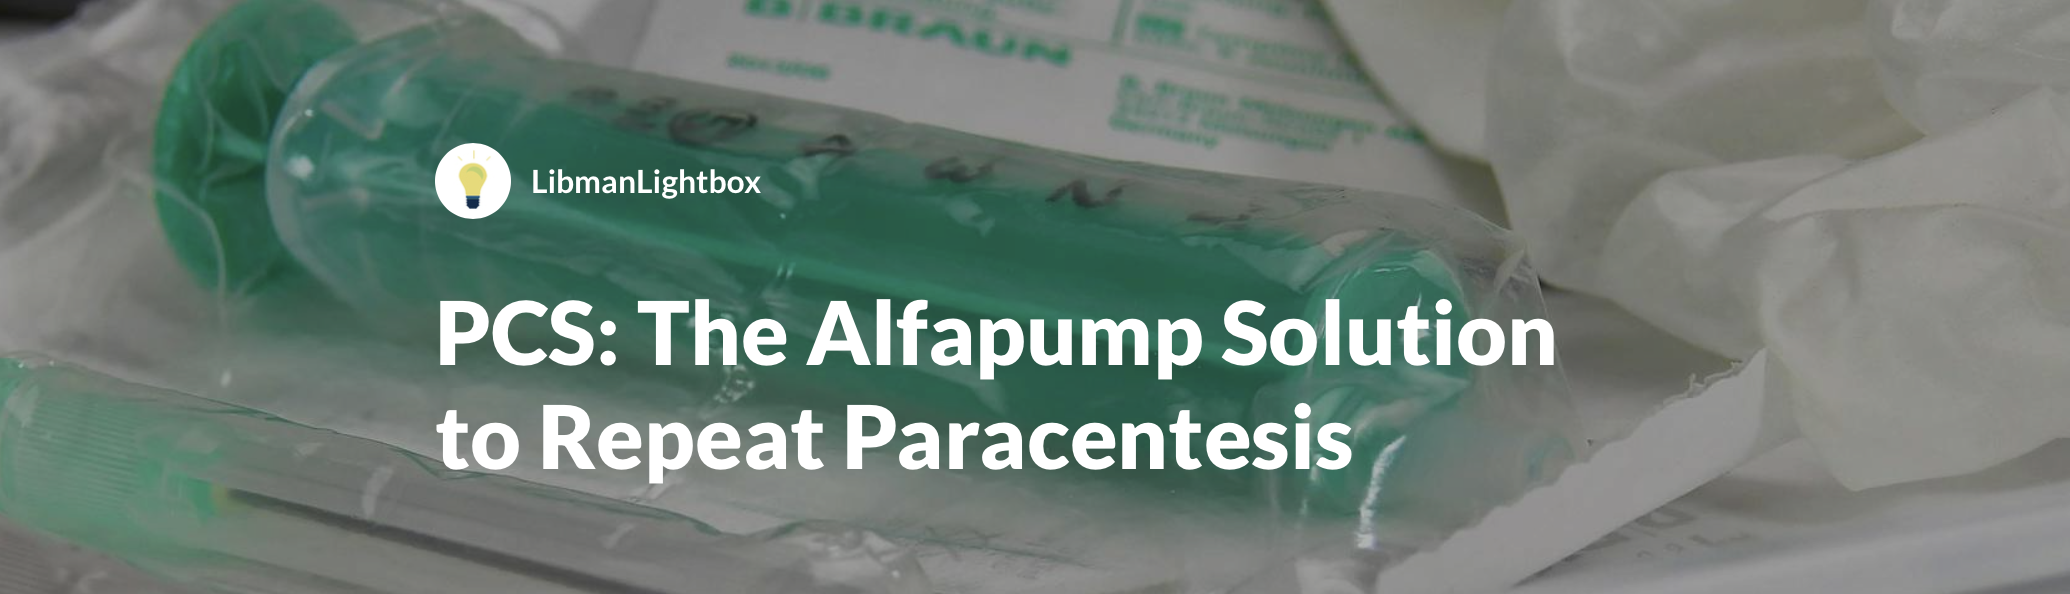 ICD-10-PCS: The Alfapump Solution to Repeat Paracentesis